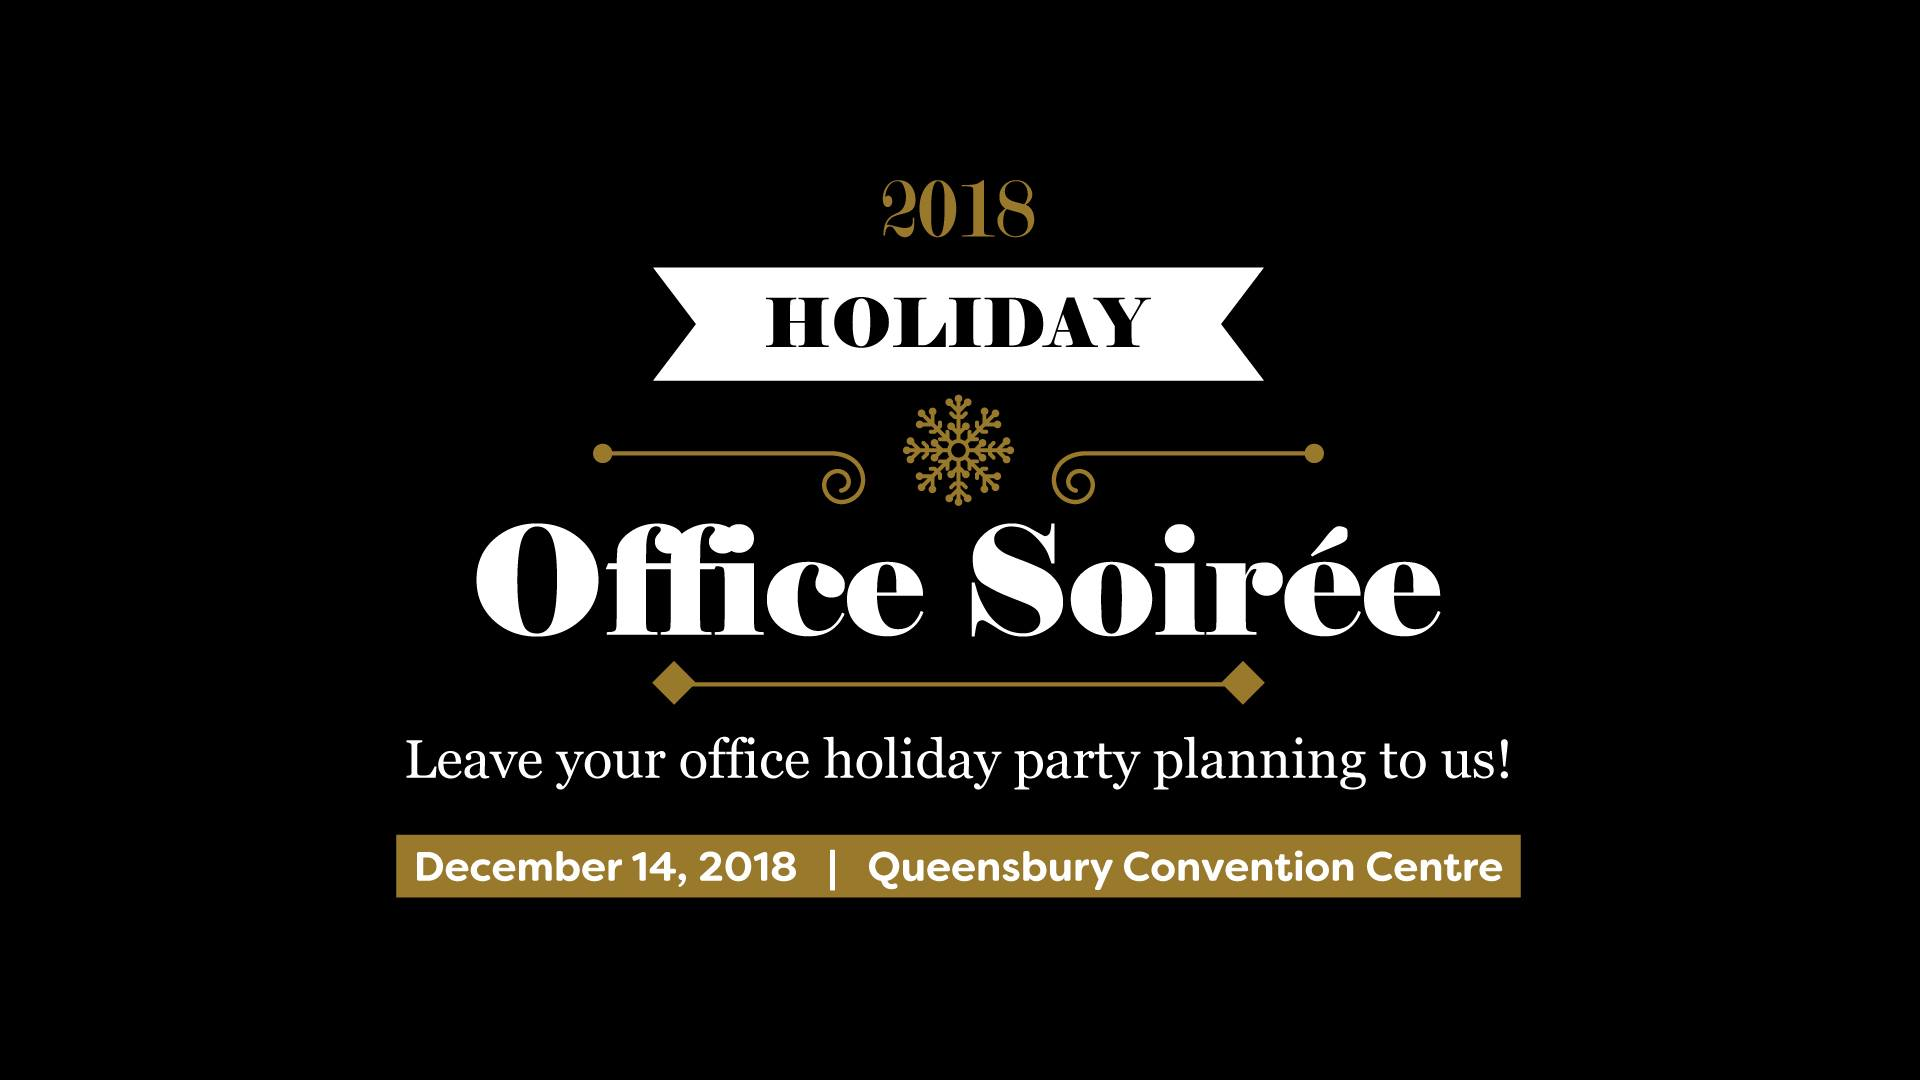 Win a Holiday Office Soiree